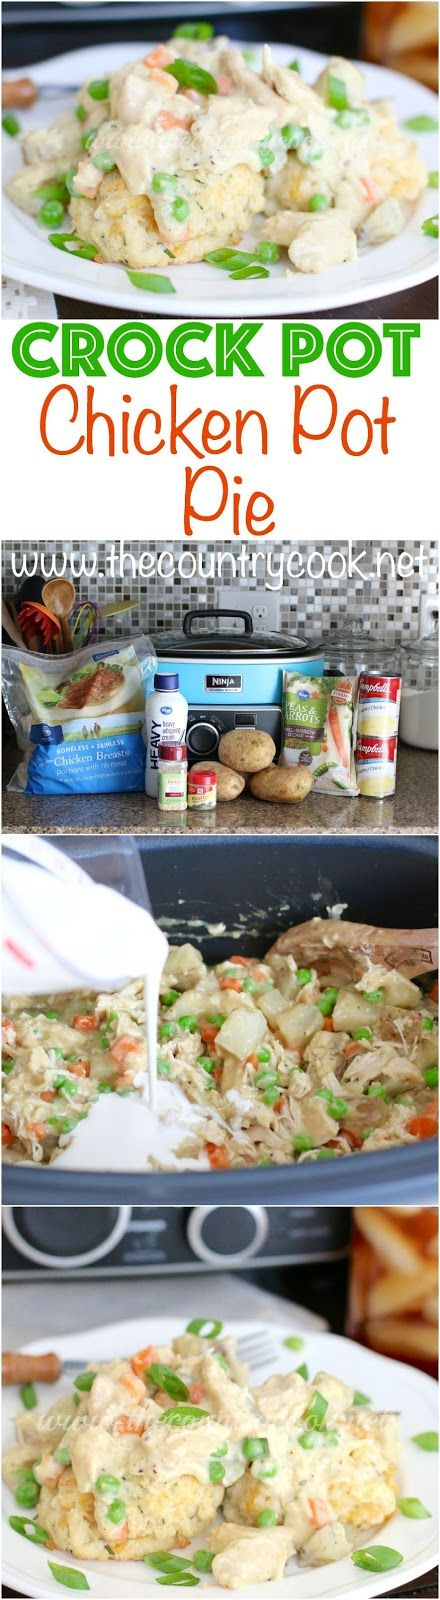 Crock Pot Chicken Pot Pie recipe from The Country Cook. A thick and creamy…